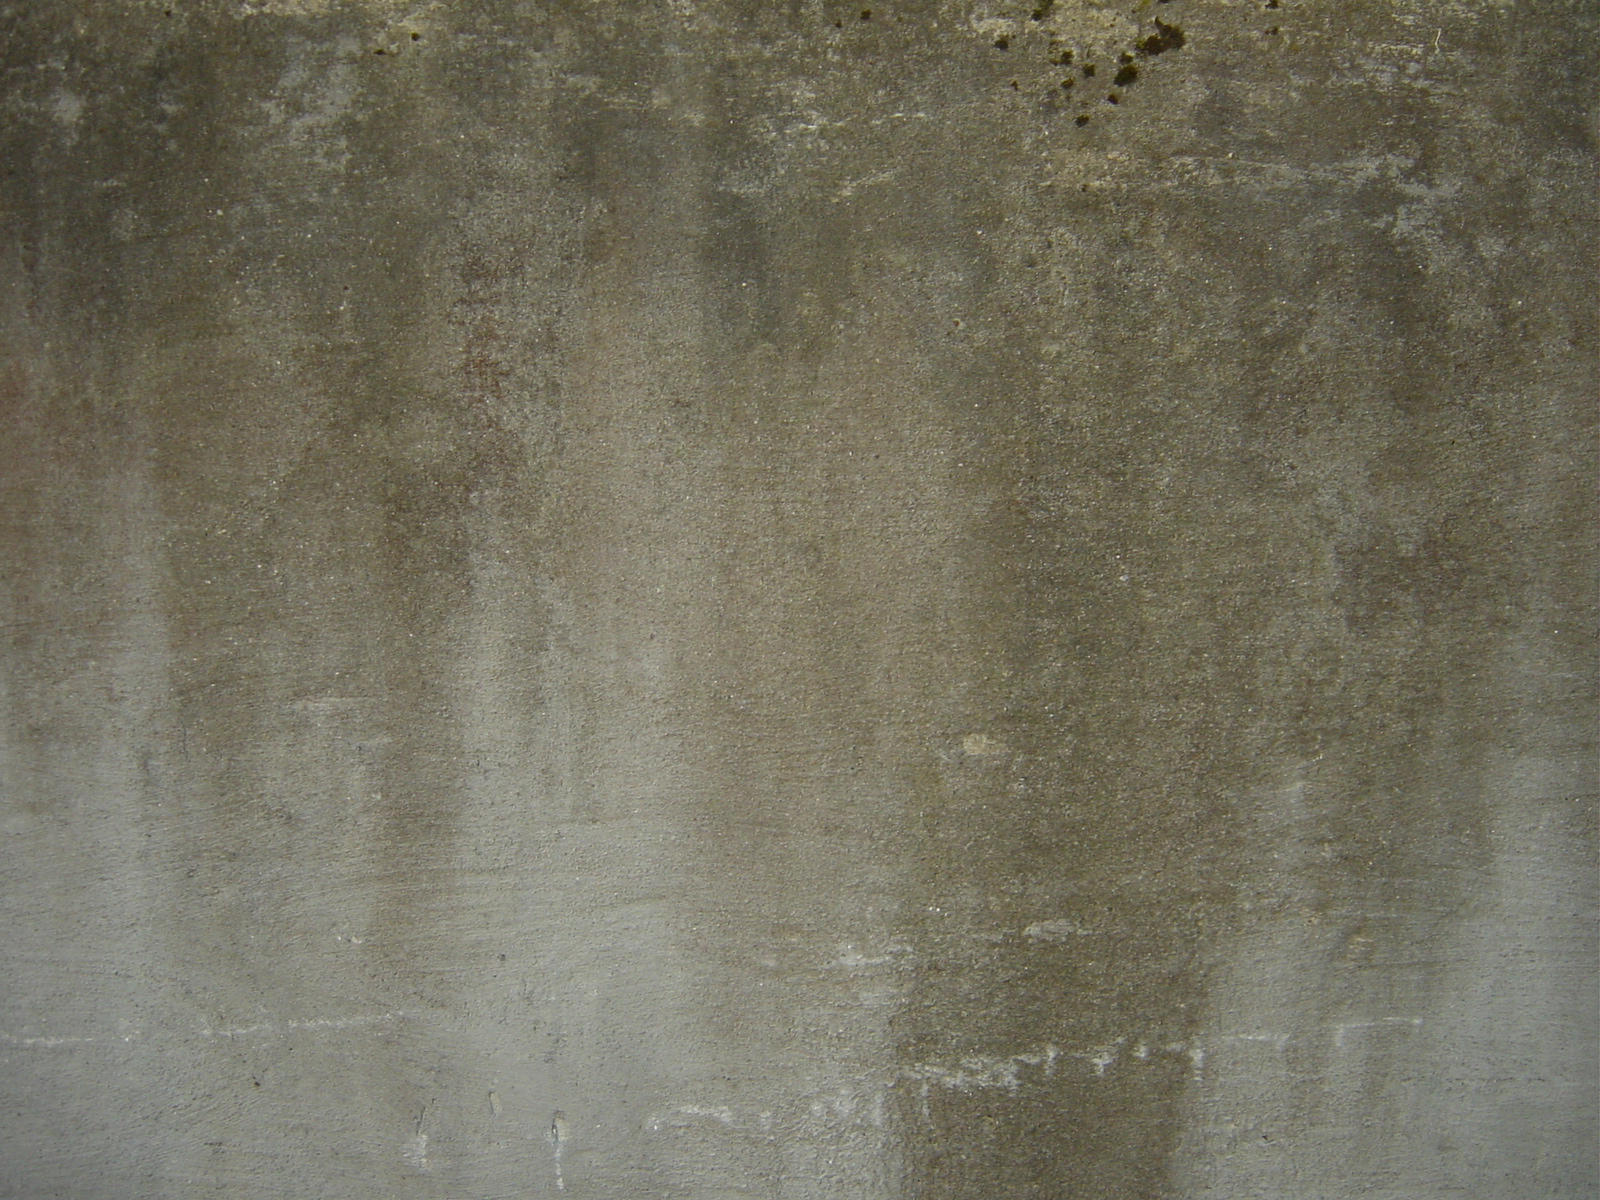 wall texture 3 by bansq resources stock images textures other 2002 ...